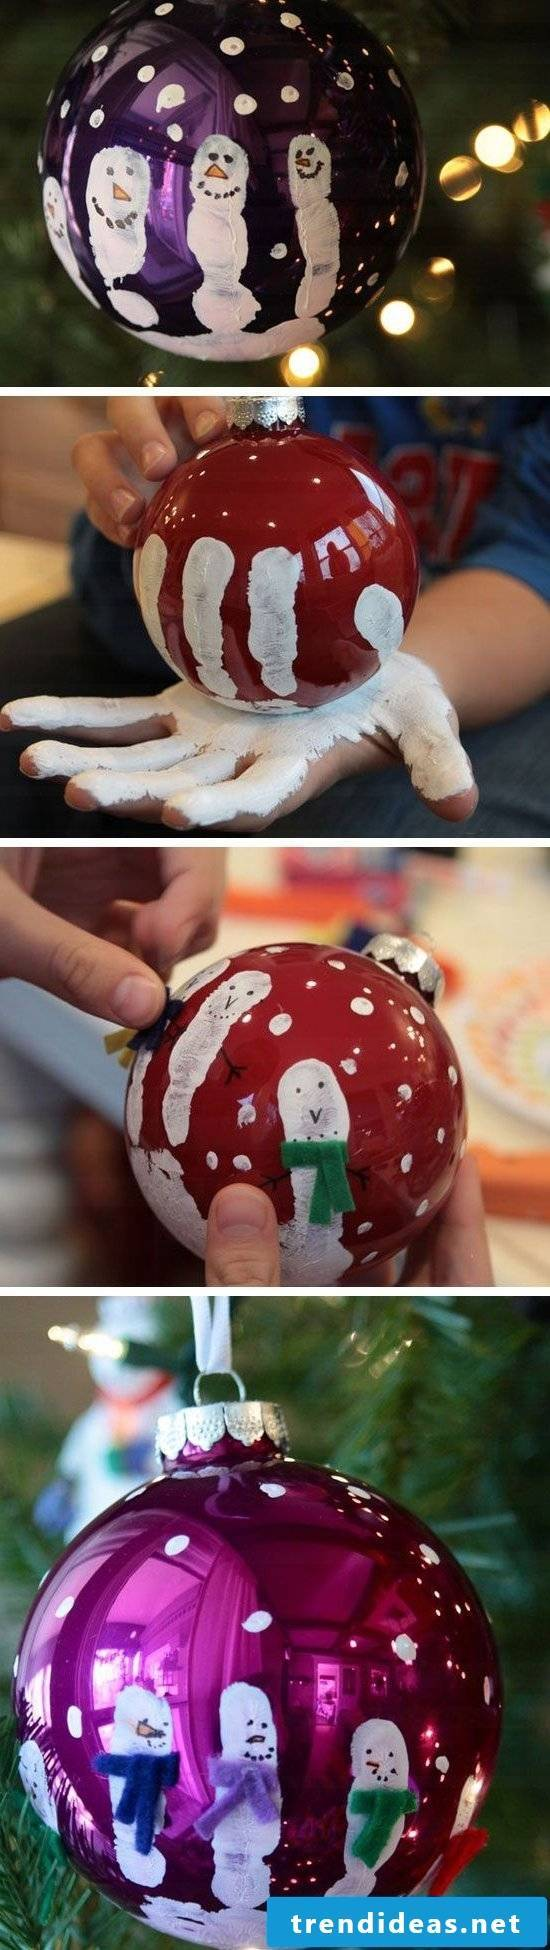 Christmas crafts with children